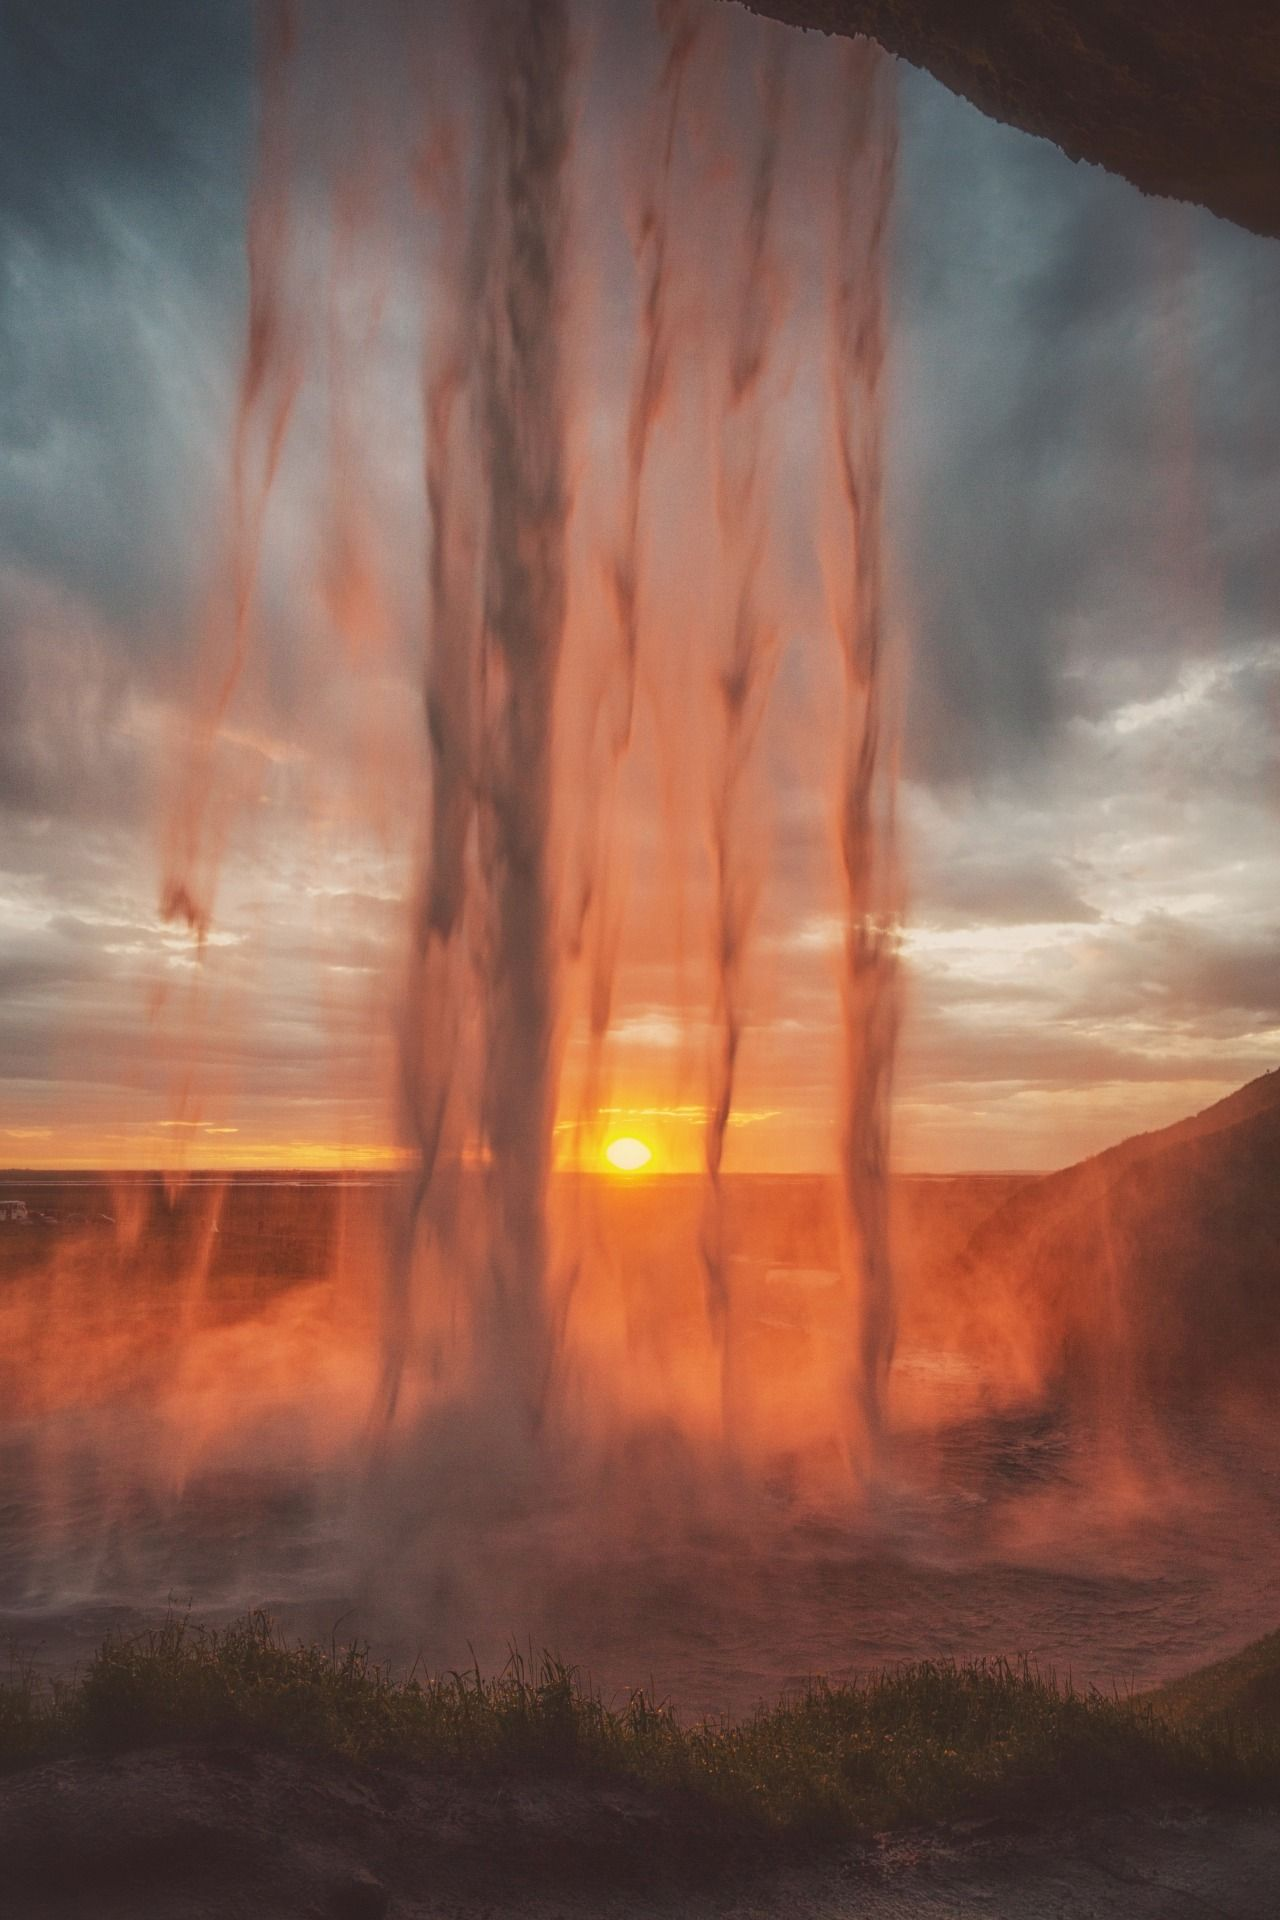 Through the veil - #edited #friday #iceland #landscape #meolog #on #photographers #Seljalandsfoss #seriously #source: #sunset #tumblr